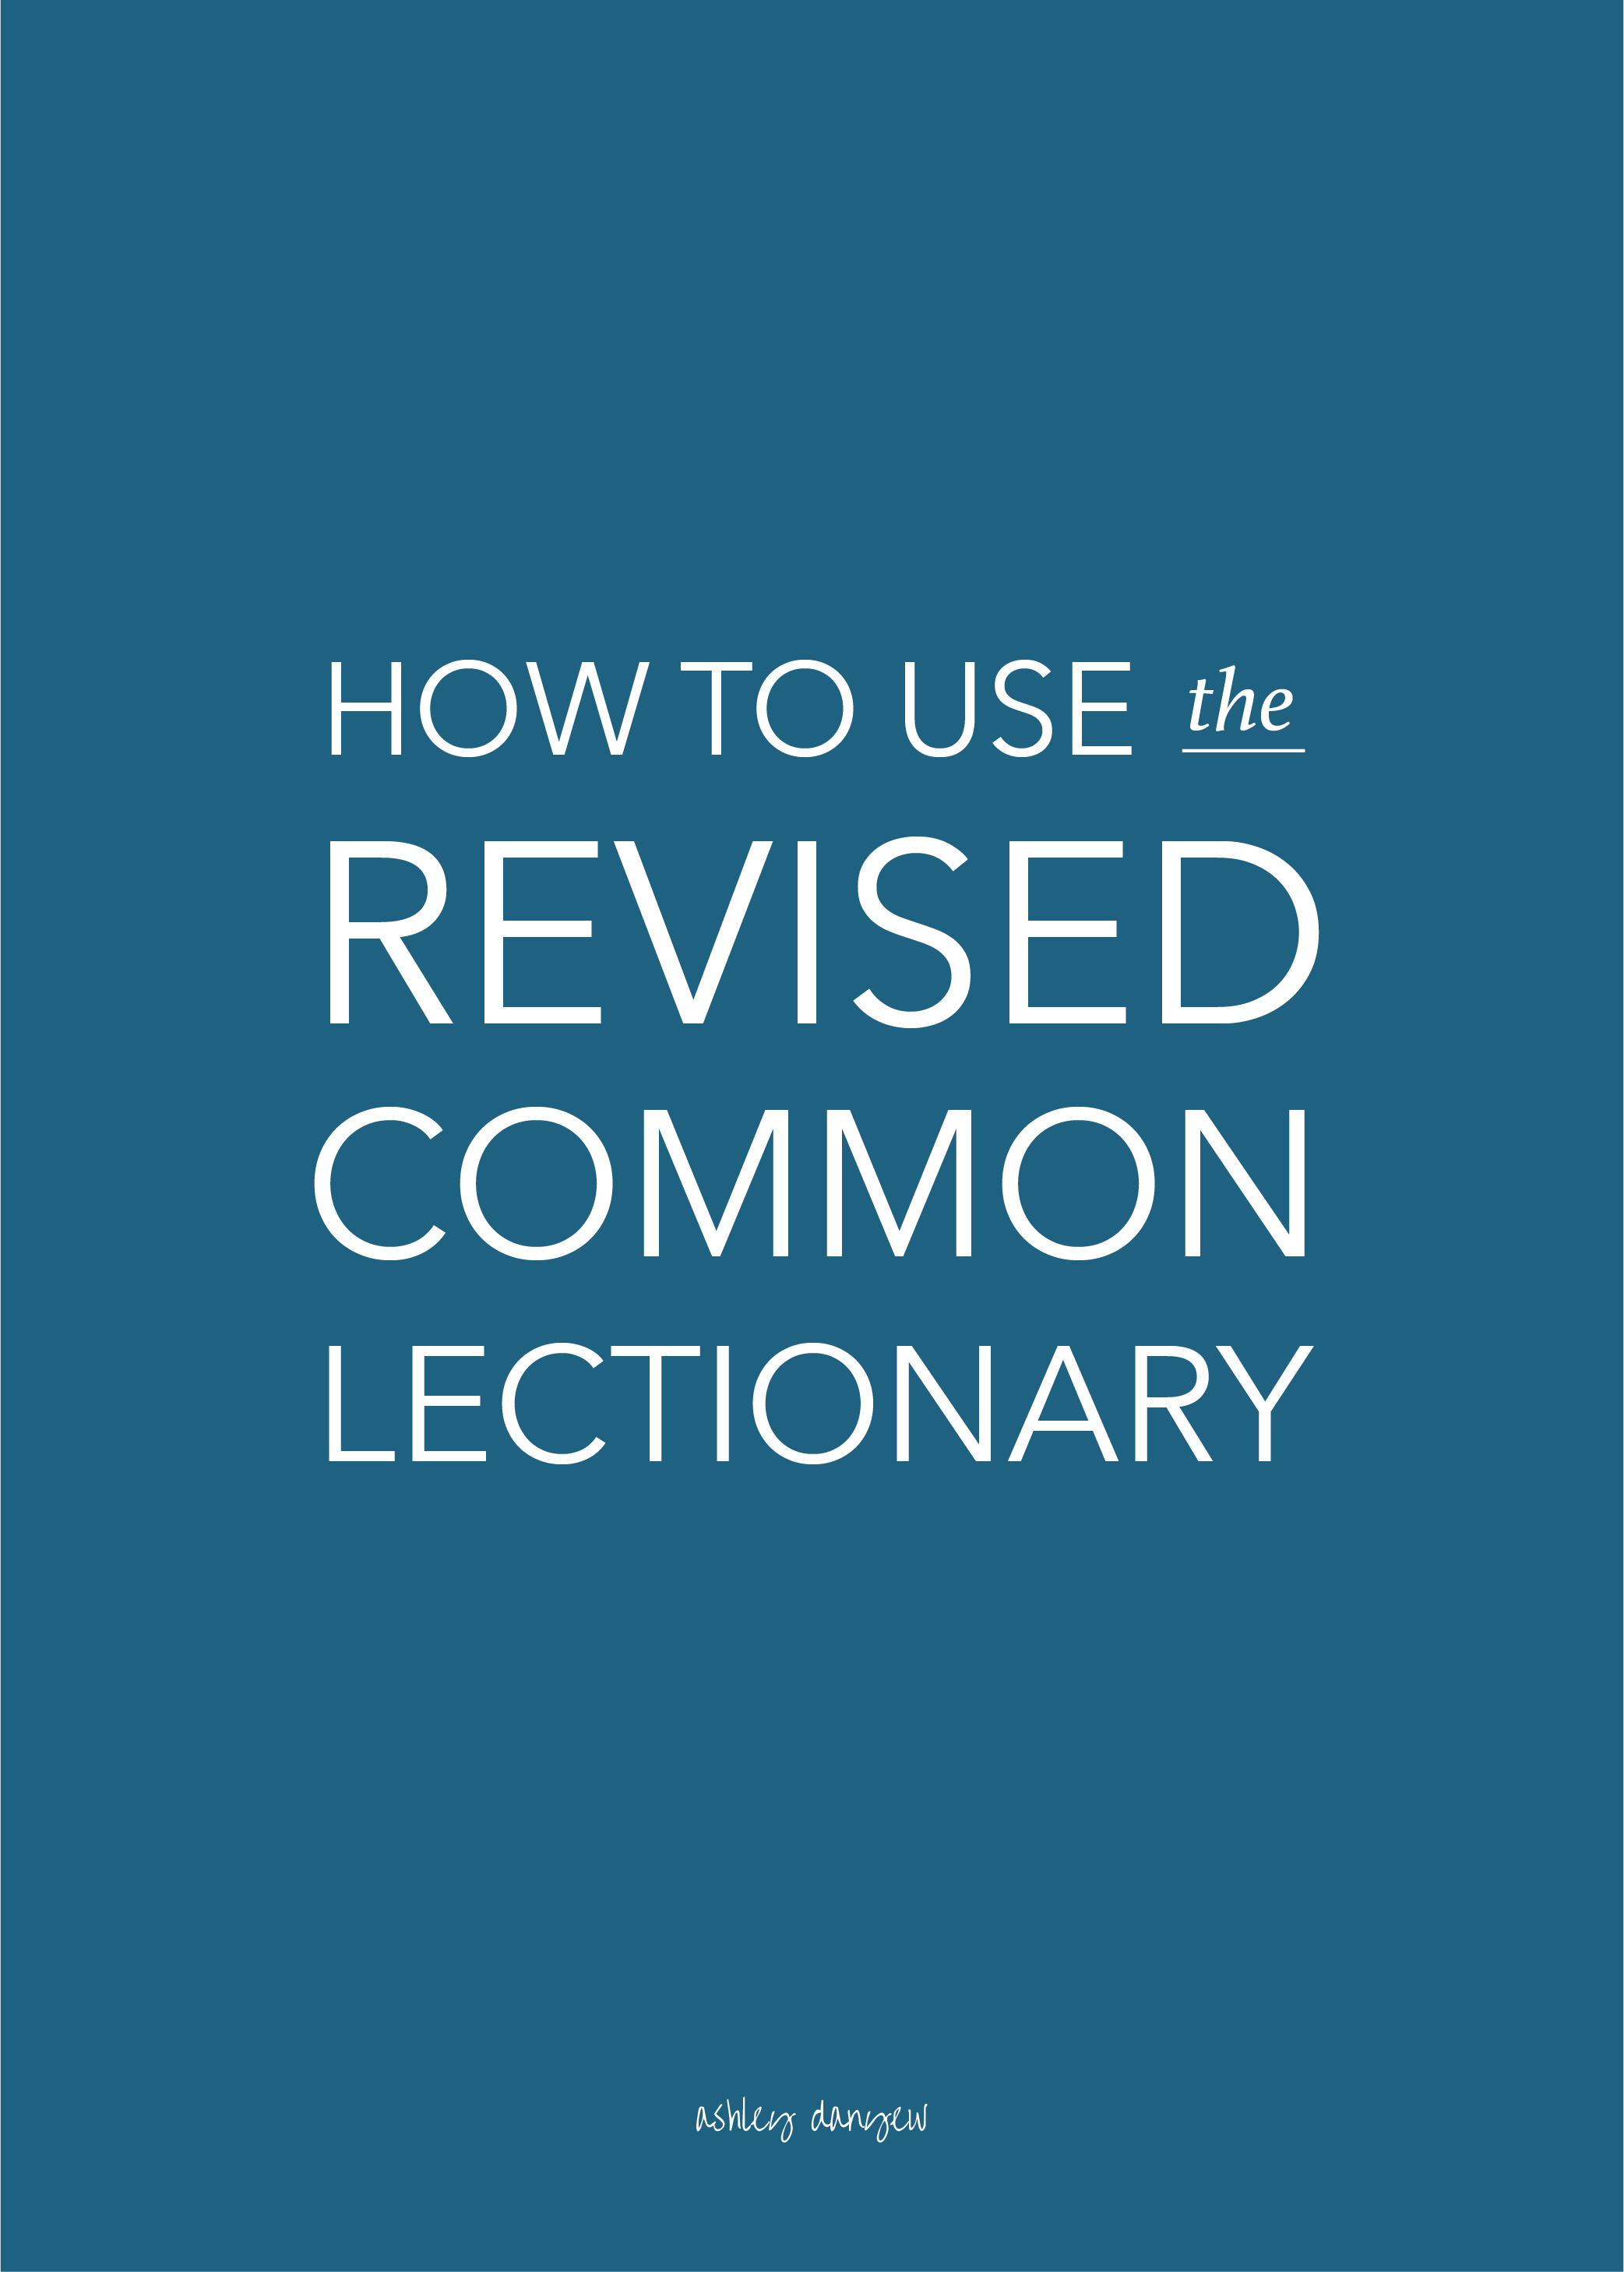 How to Use the Revised Common Lectionary-76.png